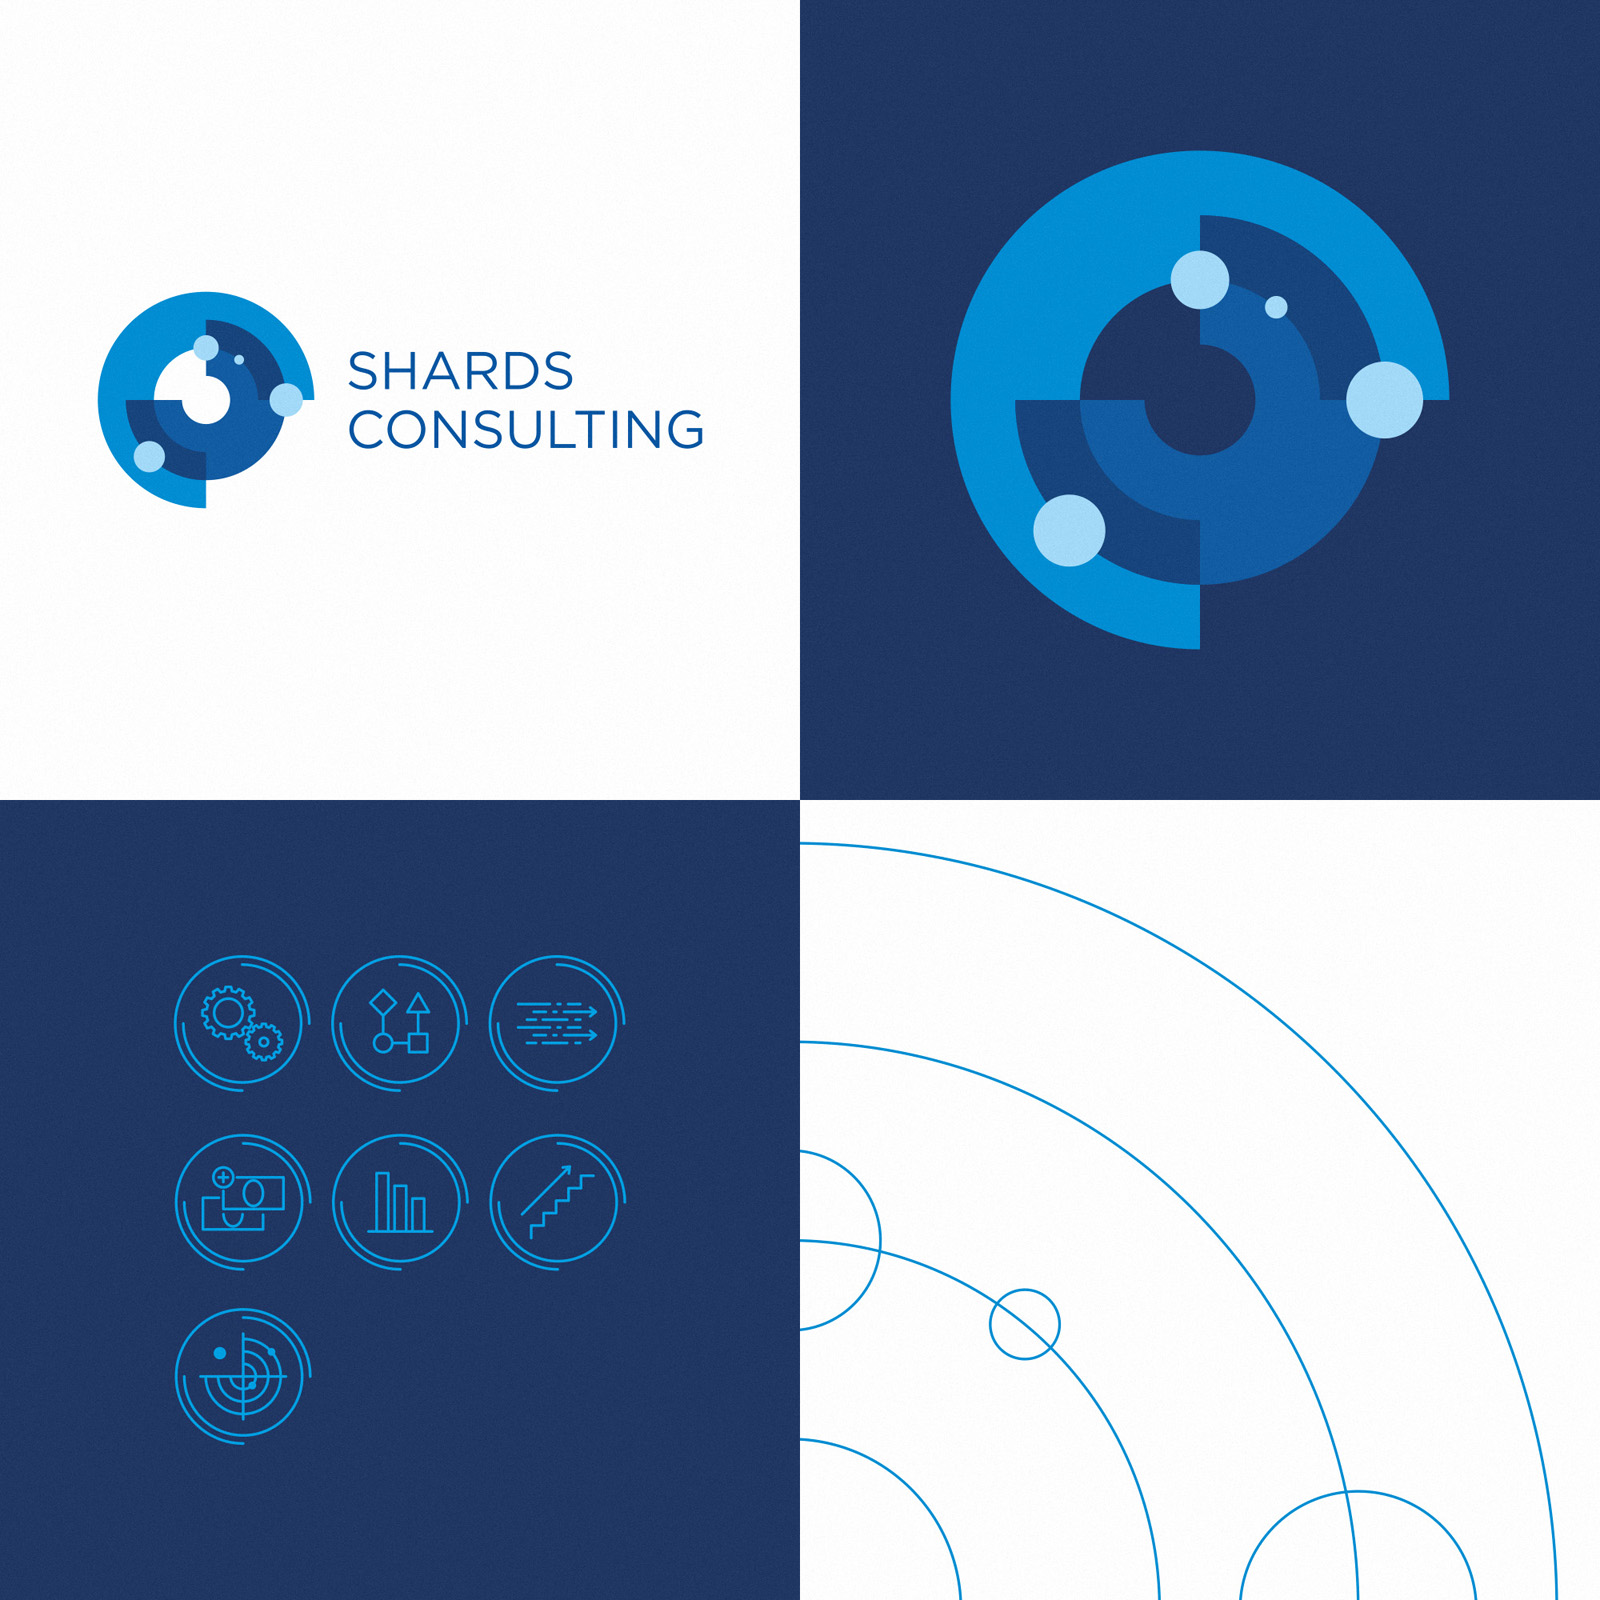 Shards Consulting